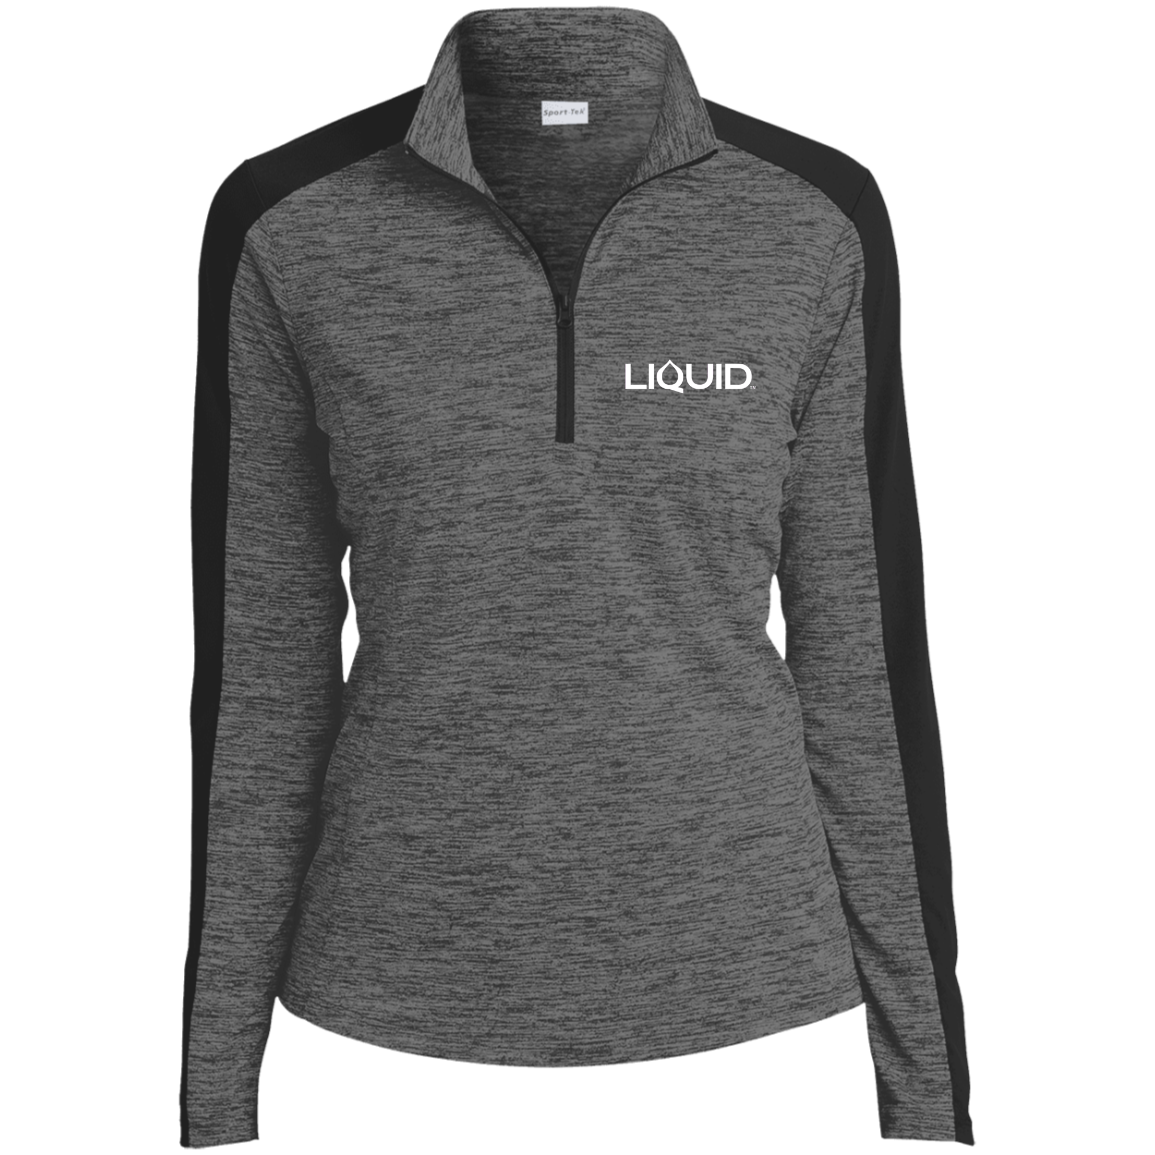 LST397 Ladies' Electric Heather Colorblock 1/4-Zip Pullover - Liquid Hydration Gear